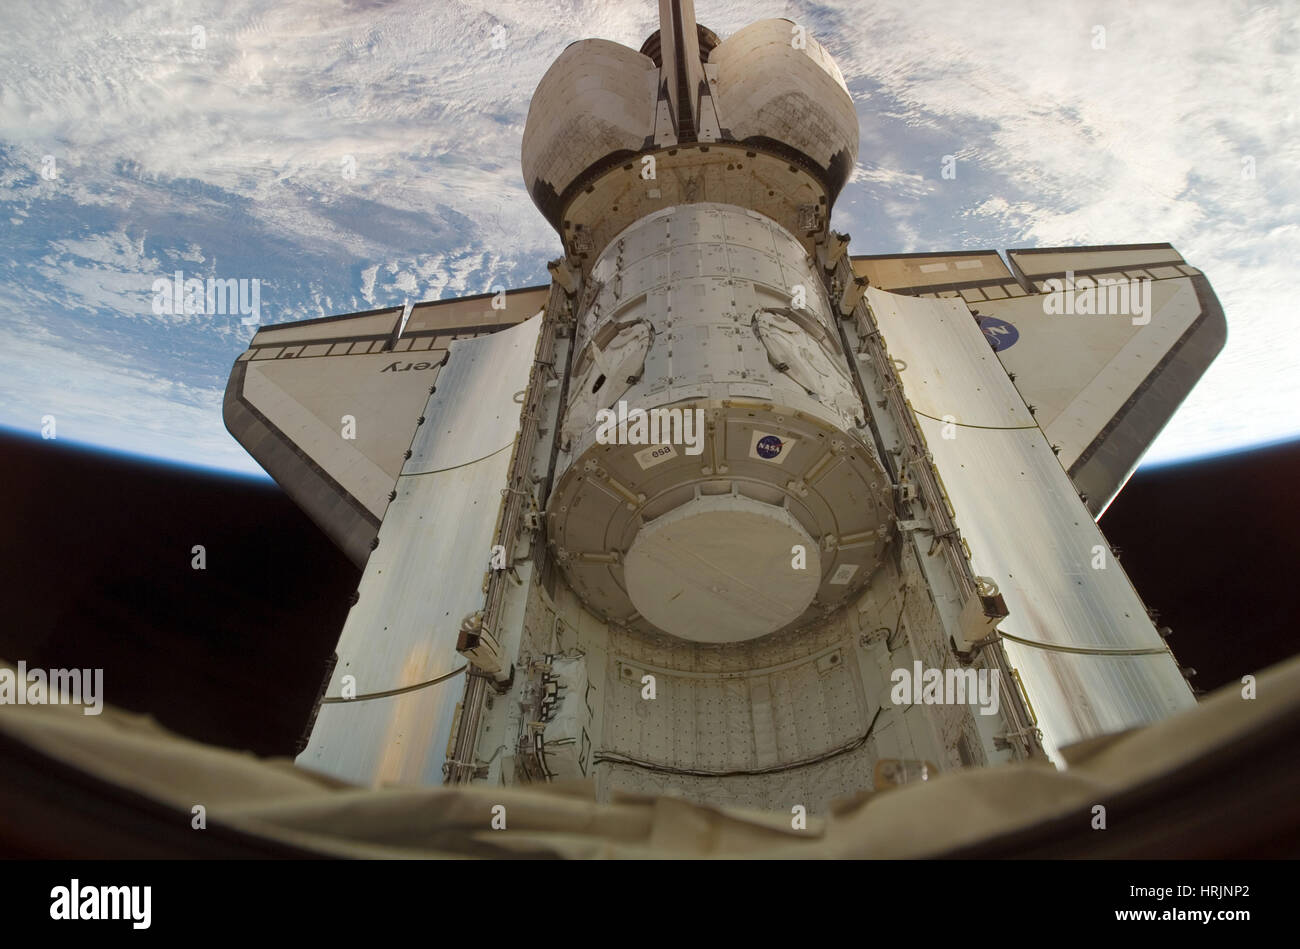 STS-120, ISS Harmony Node, 2007 - Stock Image